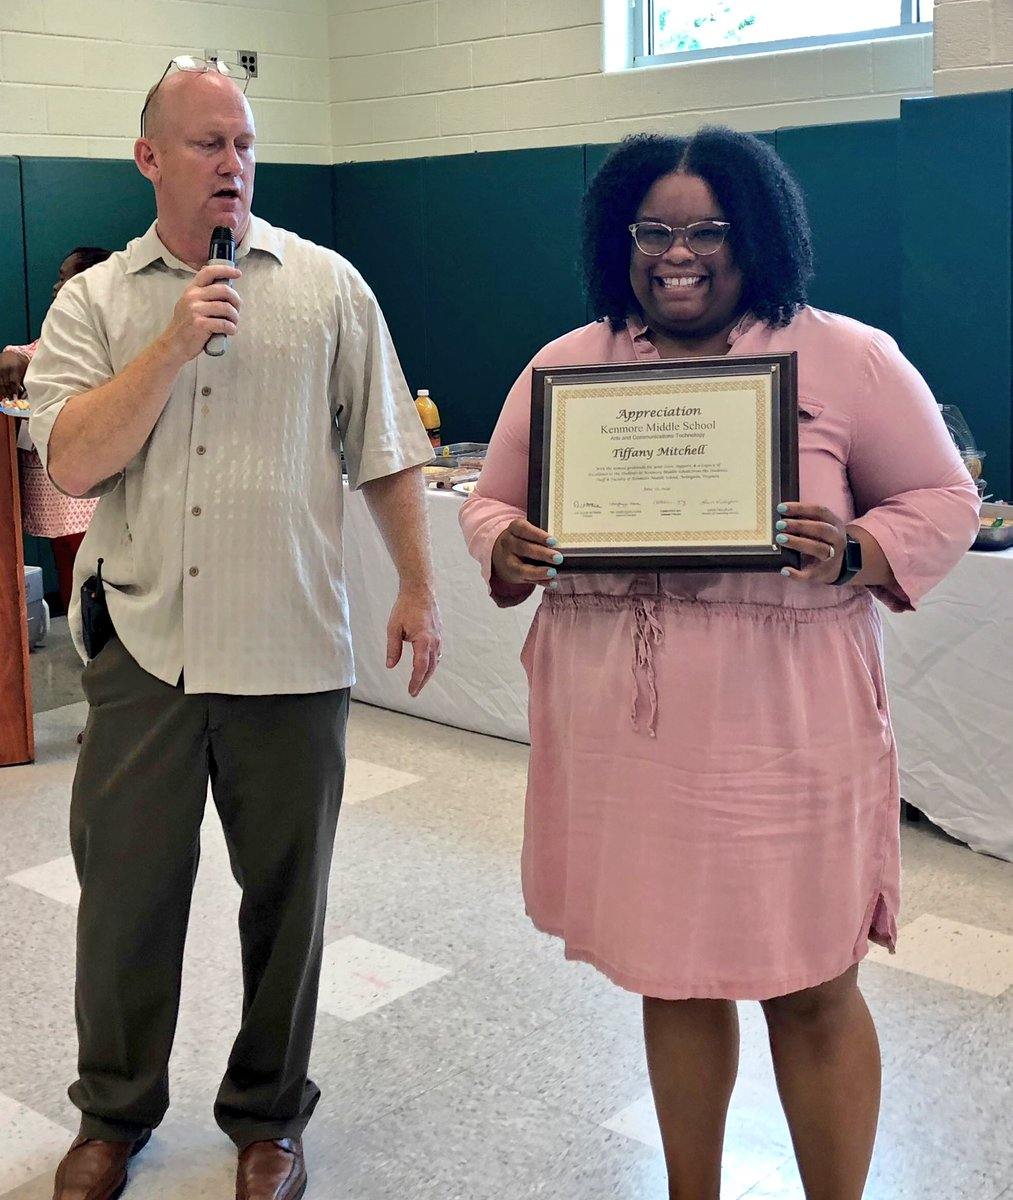 Today we honored the service of Dr. Tiffany Mitchell, Ms. Haley Norton, and Mr. Walter Riley as they will leave <a target='_blank' href='http://twitter.com/APSVirginia'>@APSVirginia</a> to pursue other career and life goals.  We will miss you and wish you the best of luck in your endeavors. <a target='_blank' href='http://search.twitter.com/search?q=APSisAWESOME'><a target='_blank' href='https://twitter.com/hashtag/APSisAWESOME?src=hash'>#APSisAWESOME</a></a> <a target='_blank' href='https://t.co/mZU9QnCIhU'>https://t.co/mZU9QnCIhU</a>